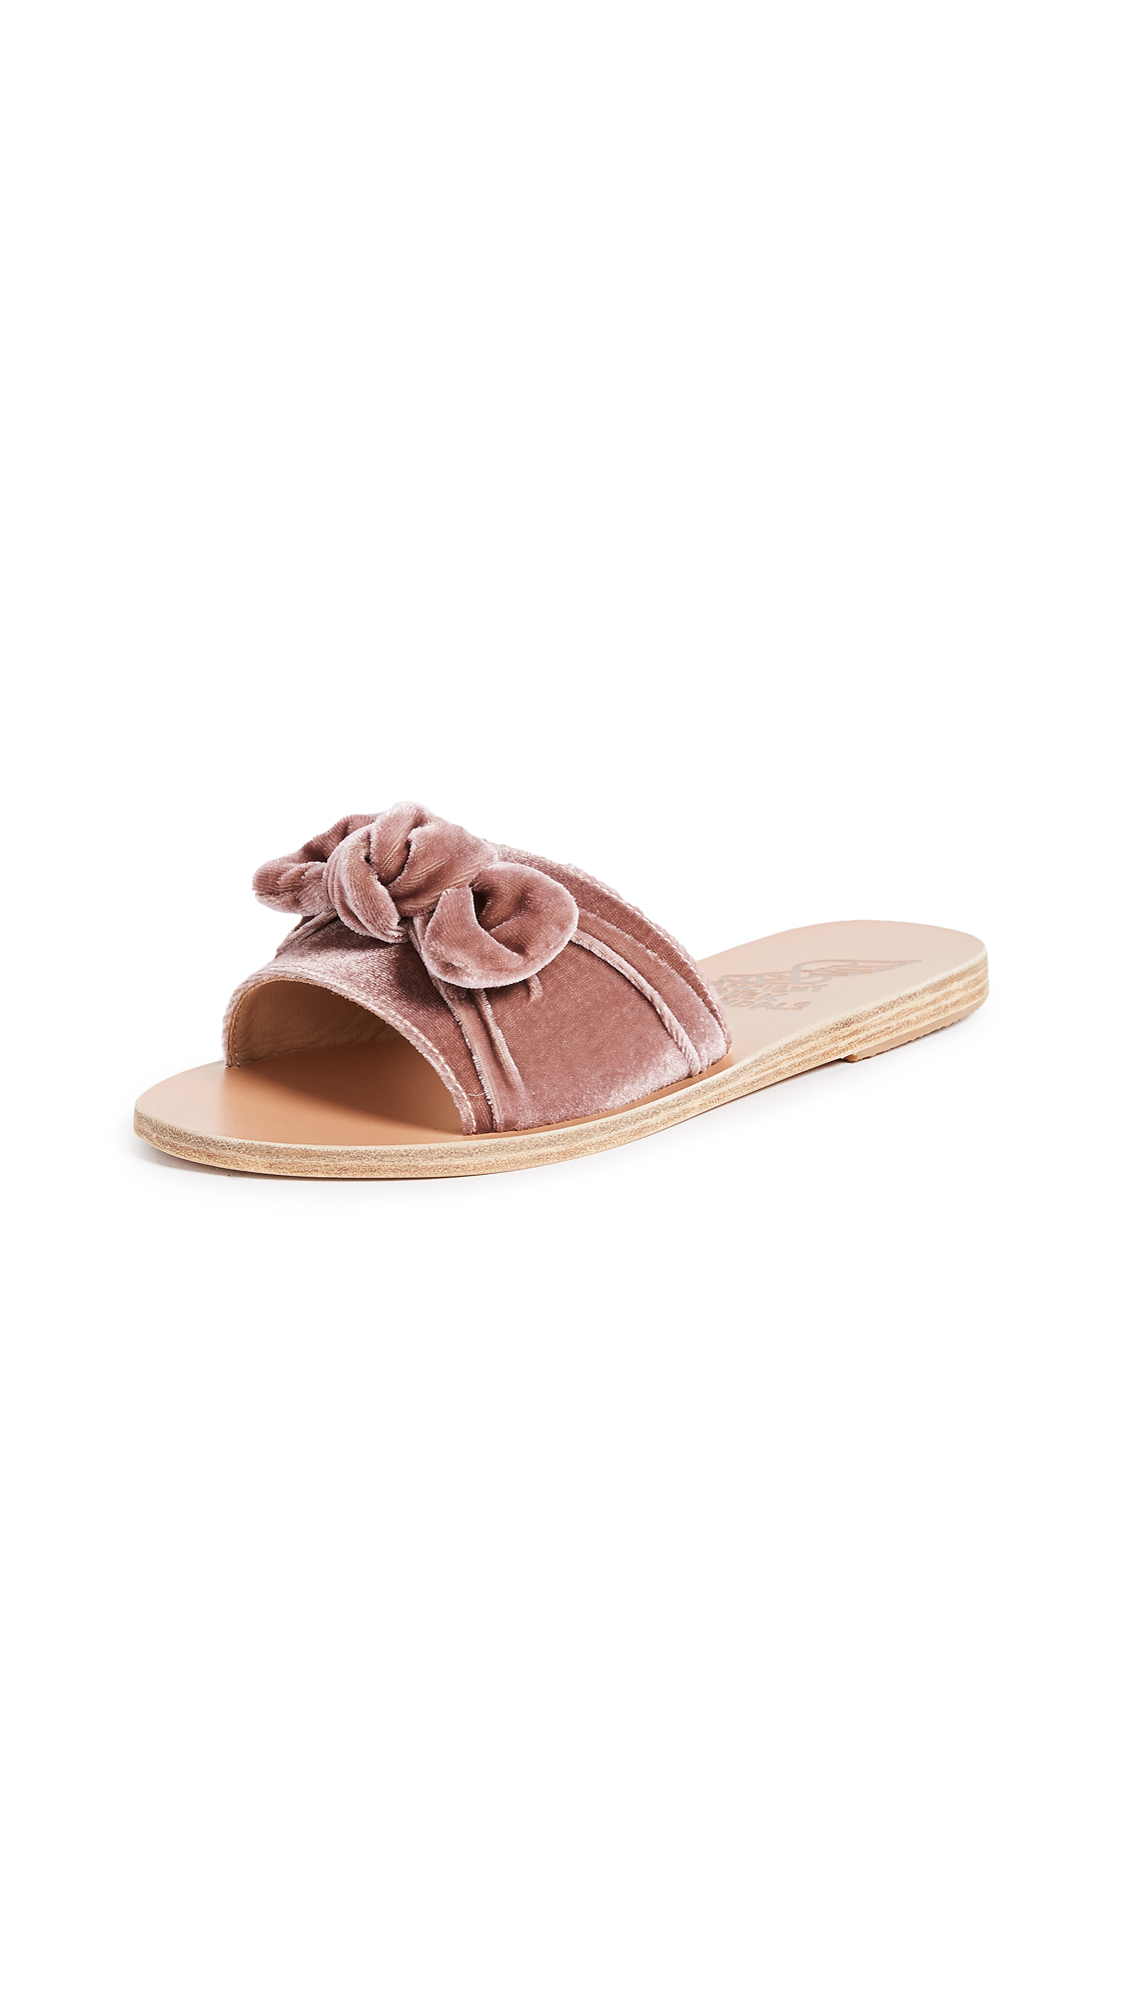 Ancient Greek Sandals Taygete Bow Slide Sandals - Aubergine